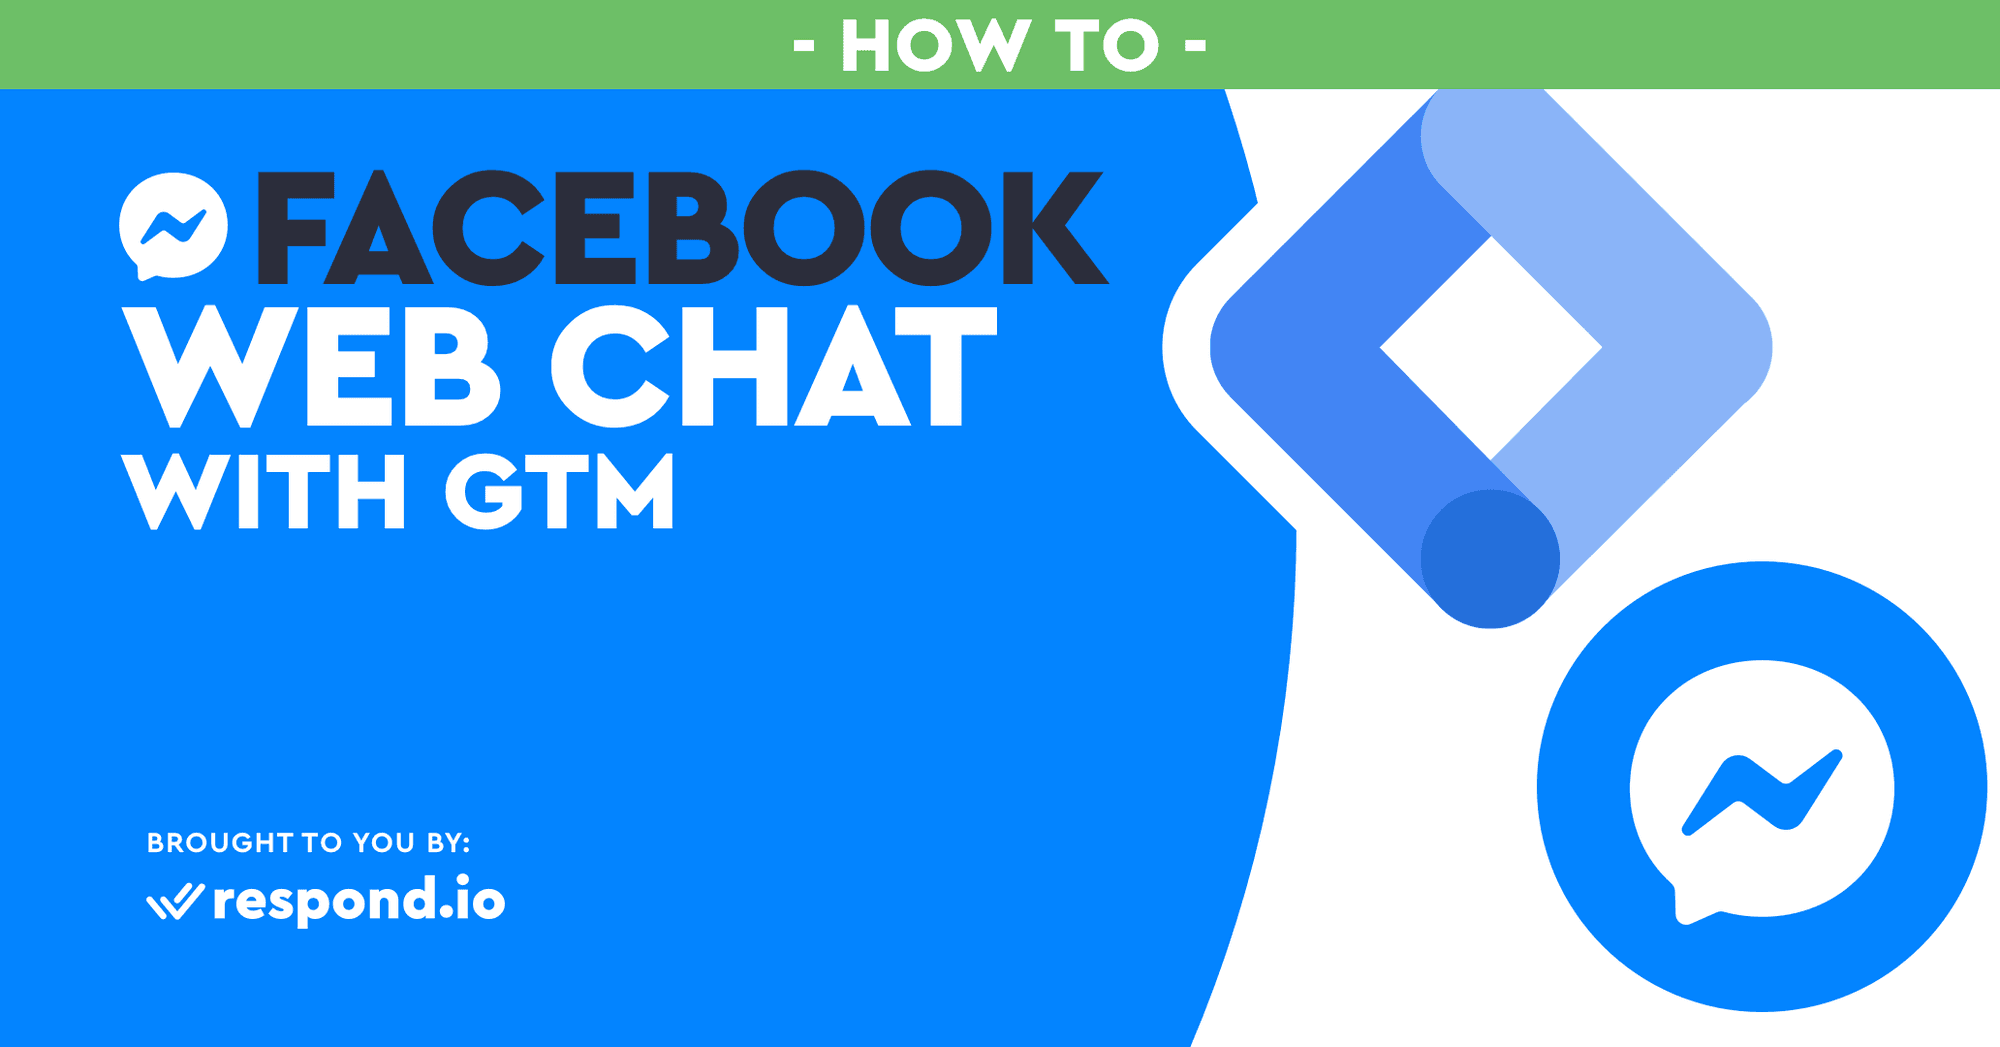 How To Add Facebook Web Chat With GTM